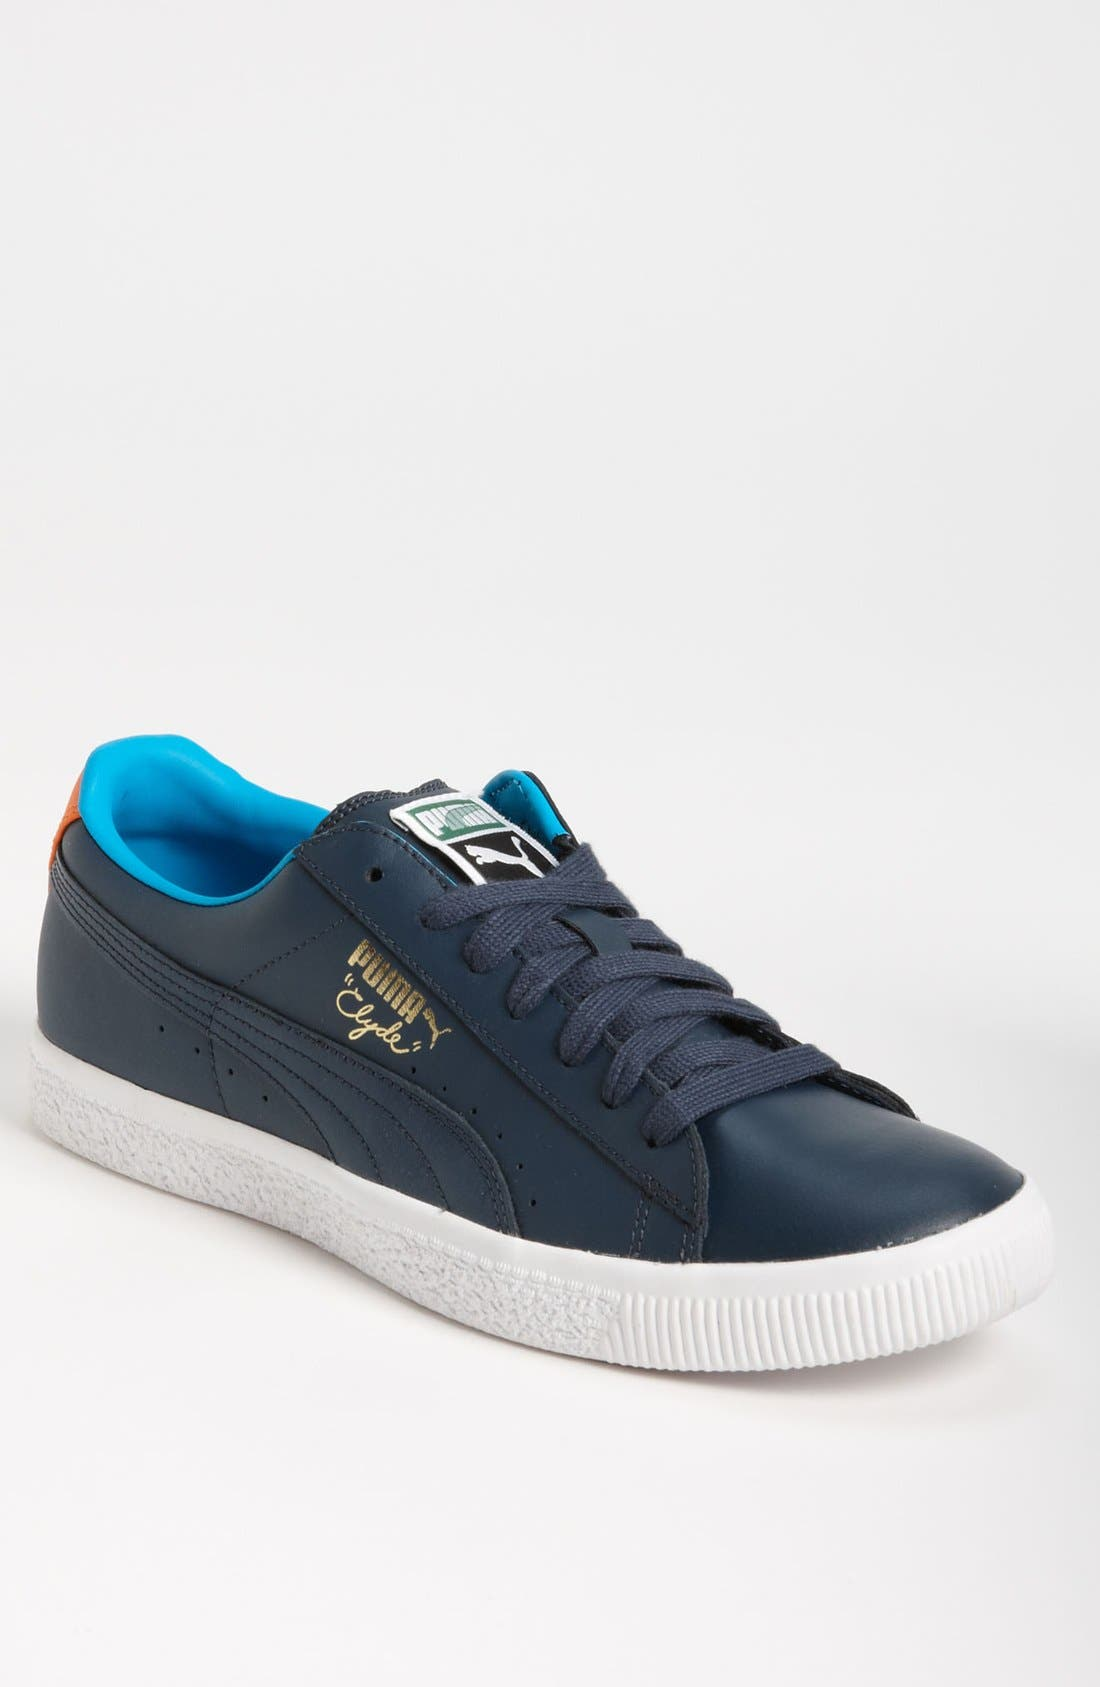 Main Image - PUMA 'Clyde' Sneaker (Men)